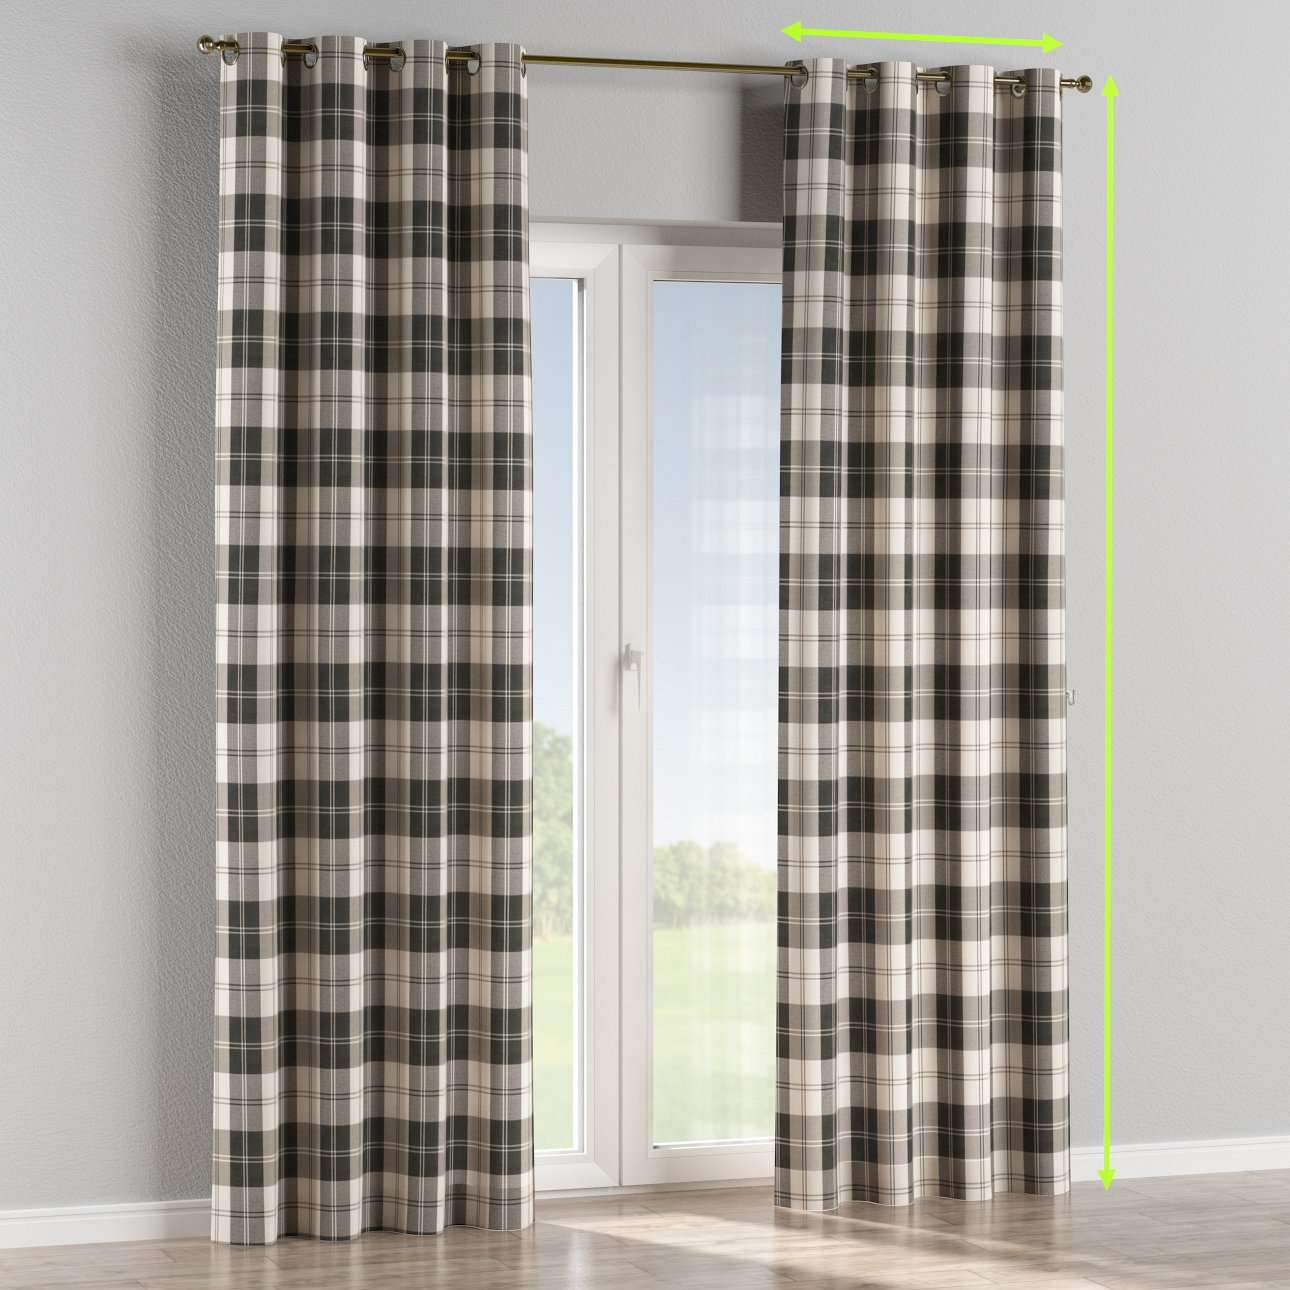 Eyelet curtains in collection Edinburgh , fabric: 115-74